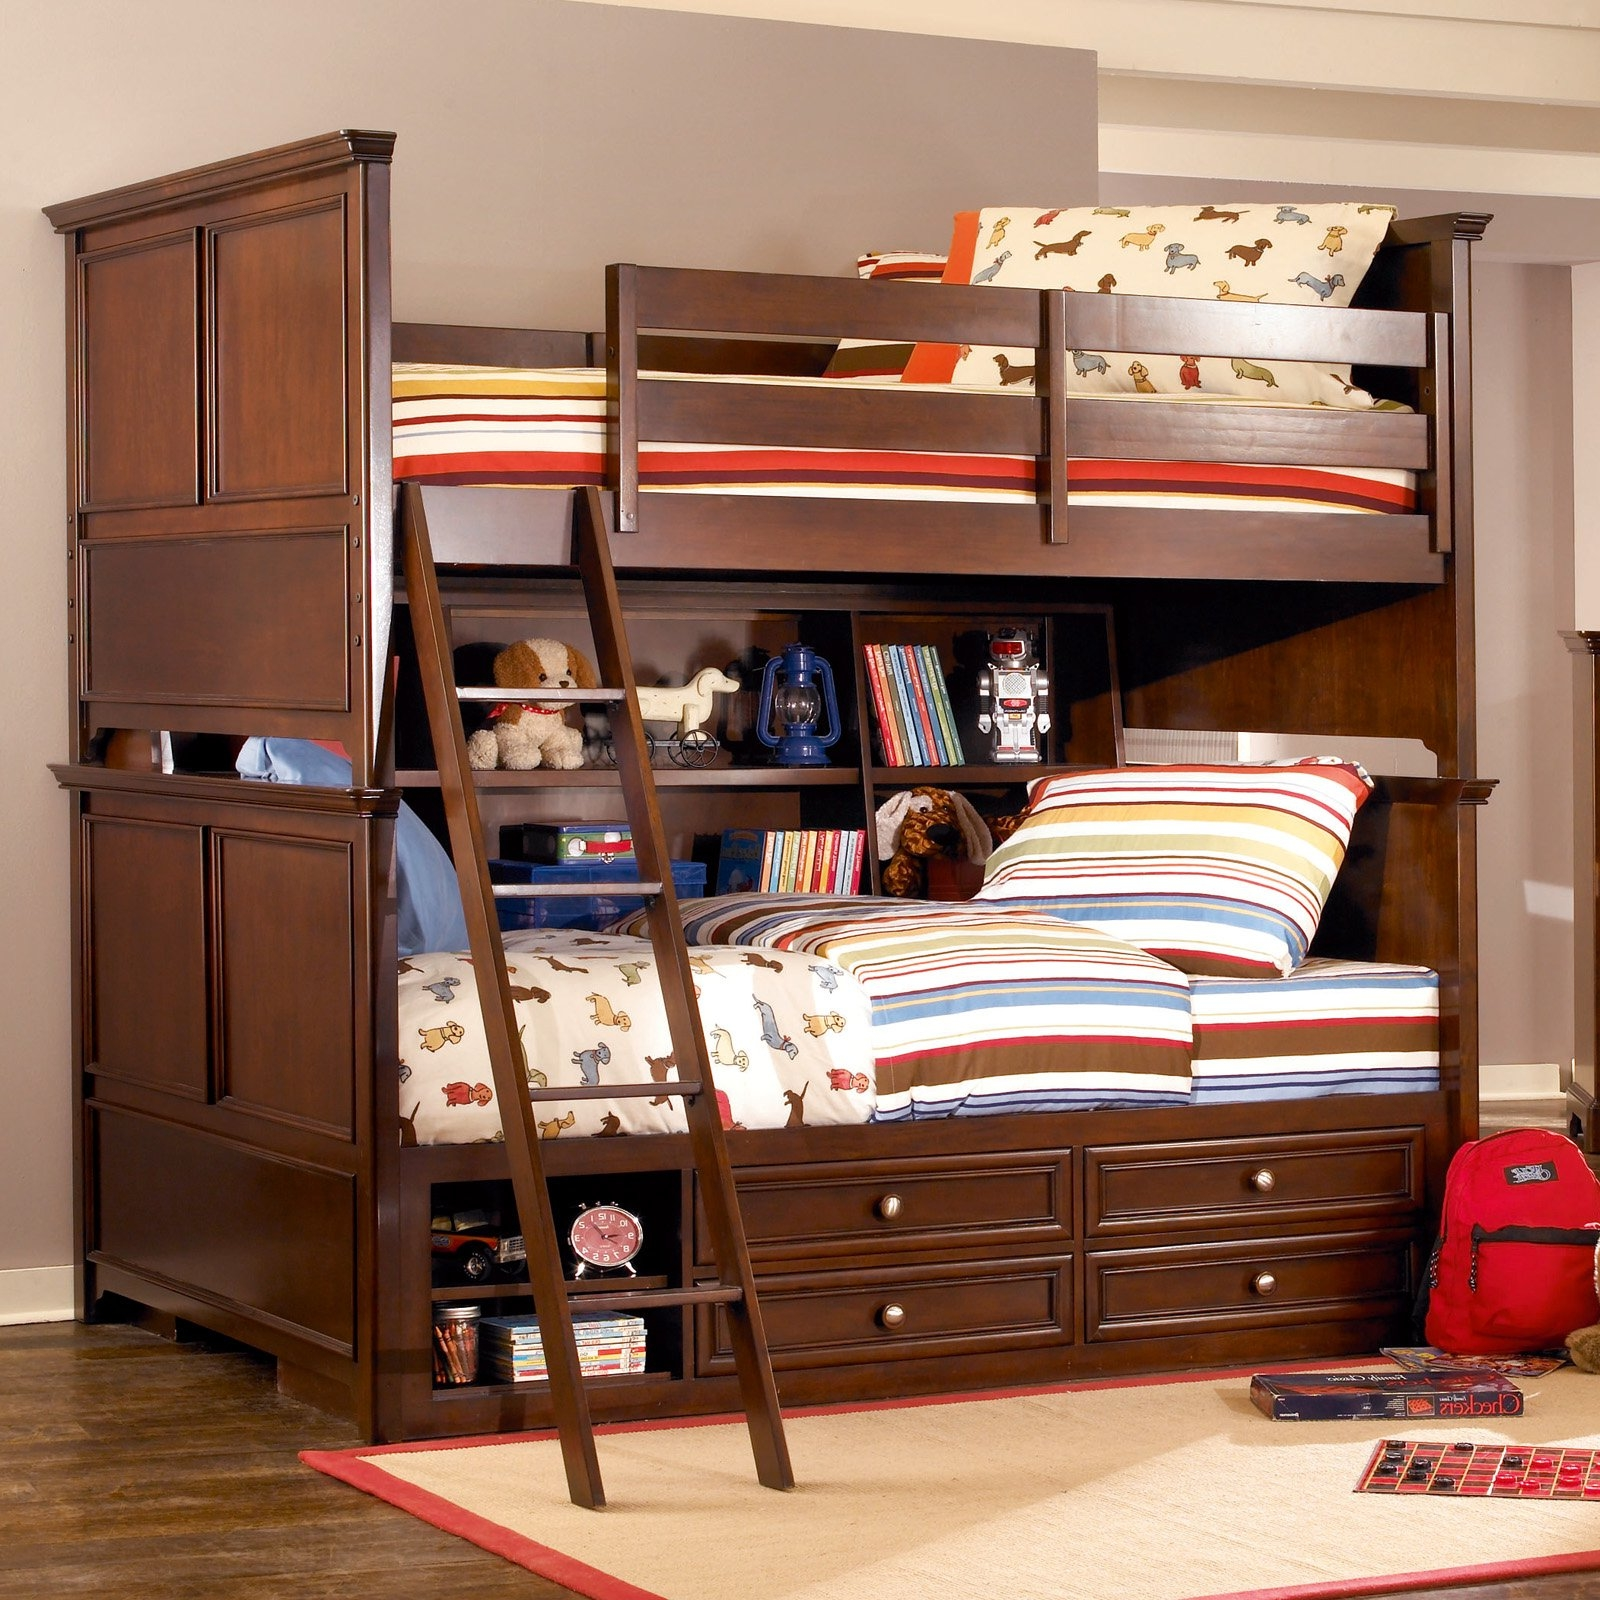 Kids Bedroom Furniture Elegant Dark Brown Wooden Bunk Bed With Full Bookcase Storage Design Wonderful Bookshelf Headboards Design Ideas What Everybody Ought (View 5 of 28)